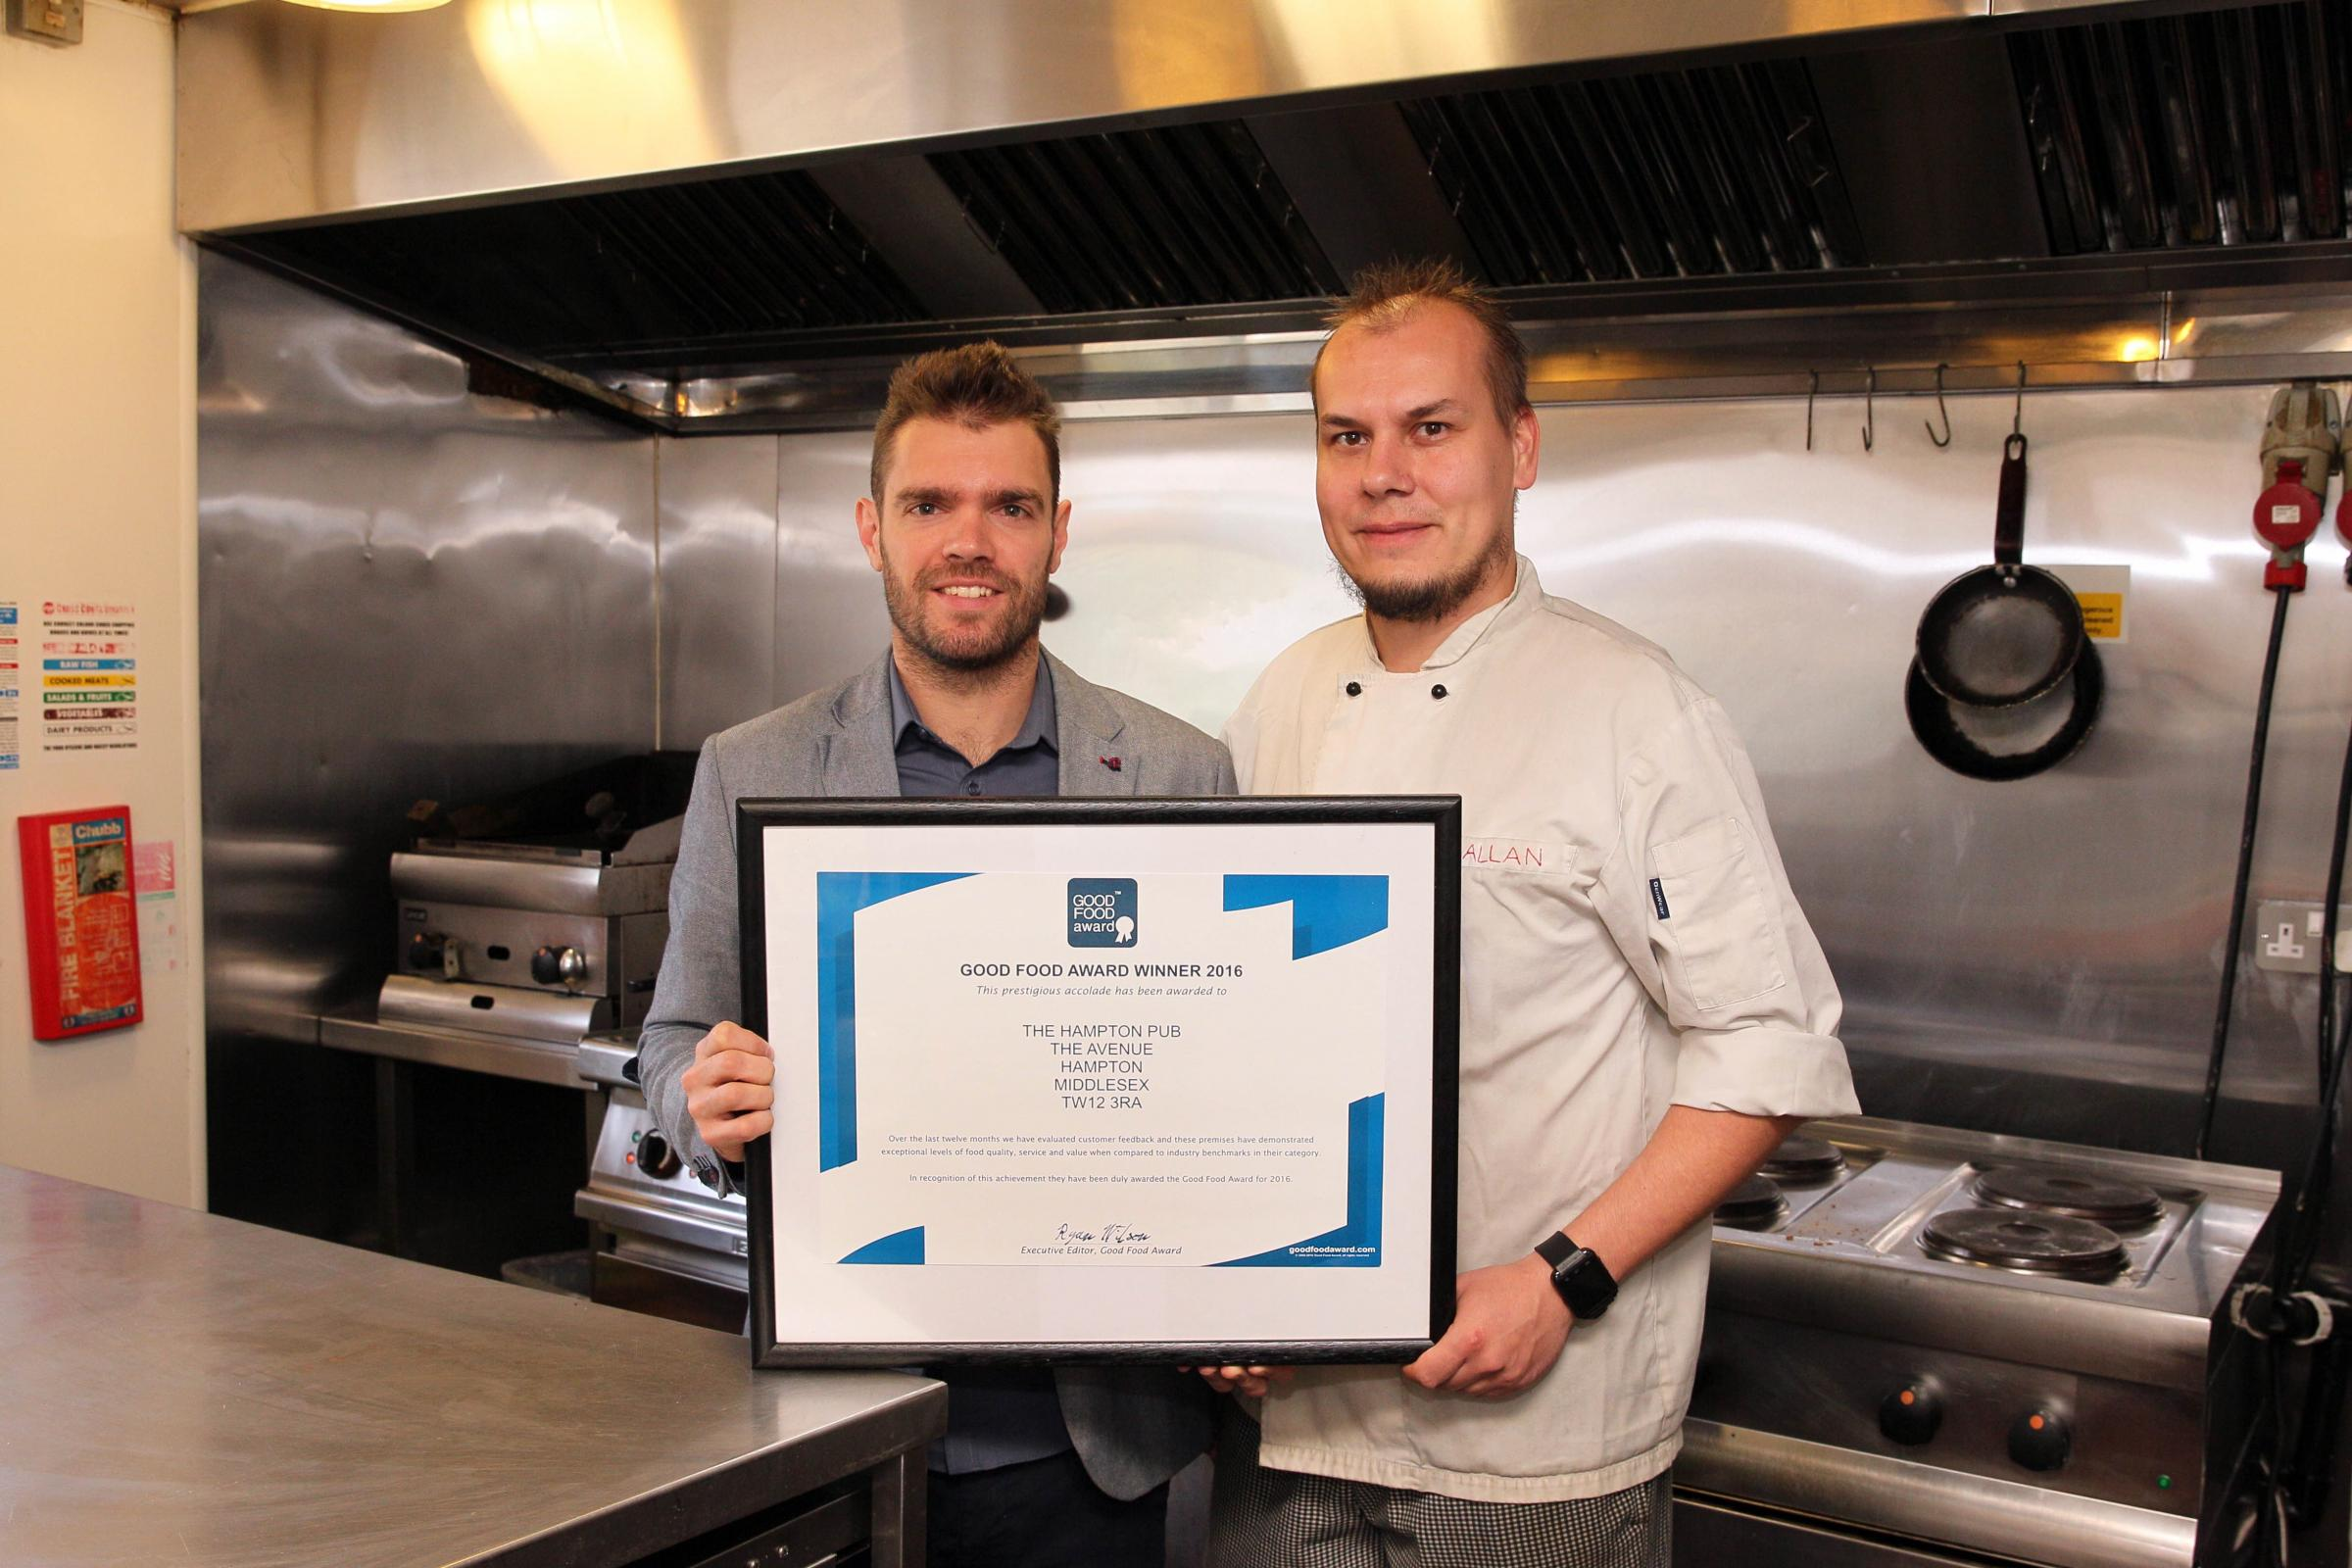 The Hampton Pub one of just 35 UK restaurants to win Good Food Award three years running